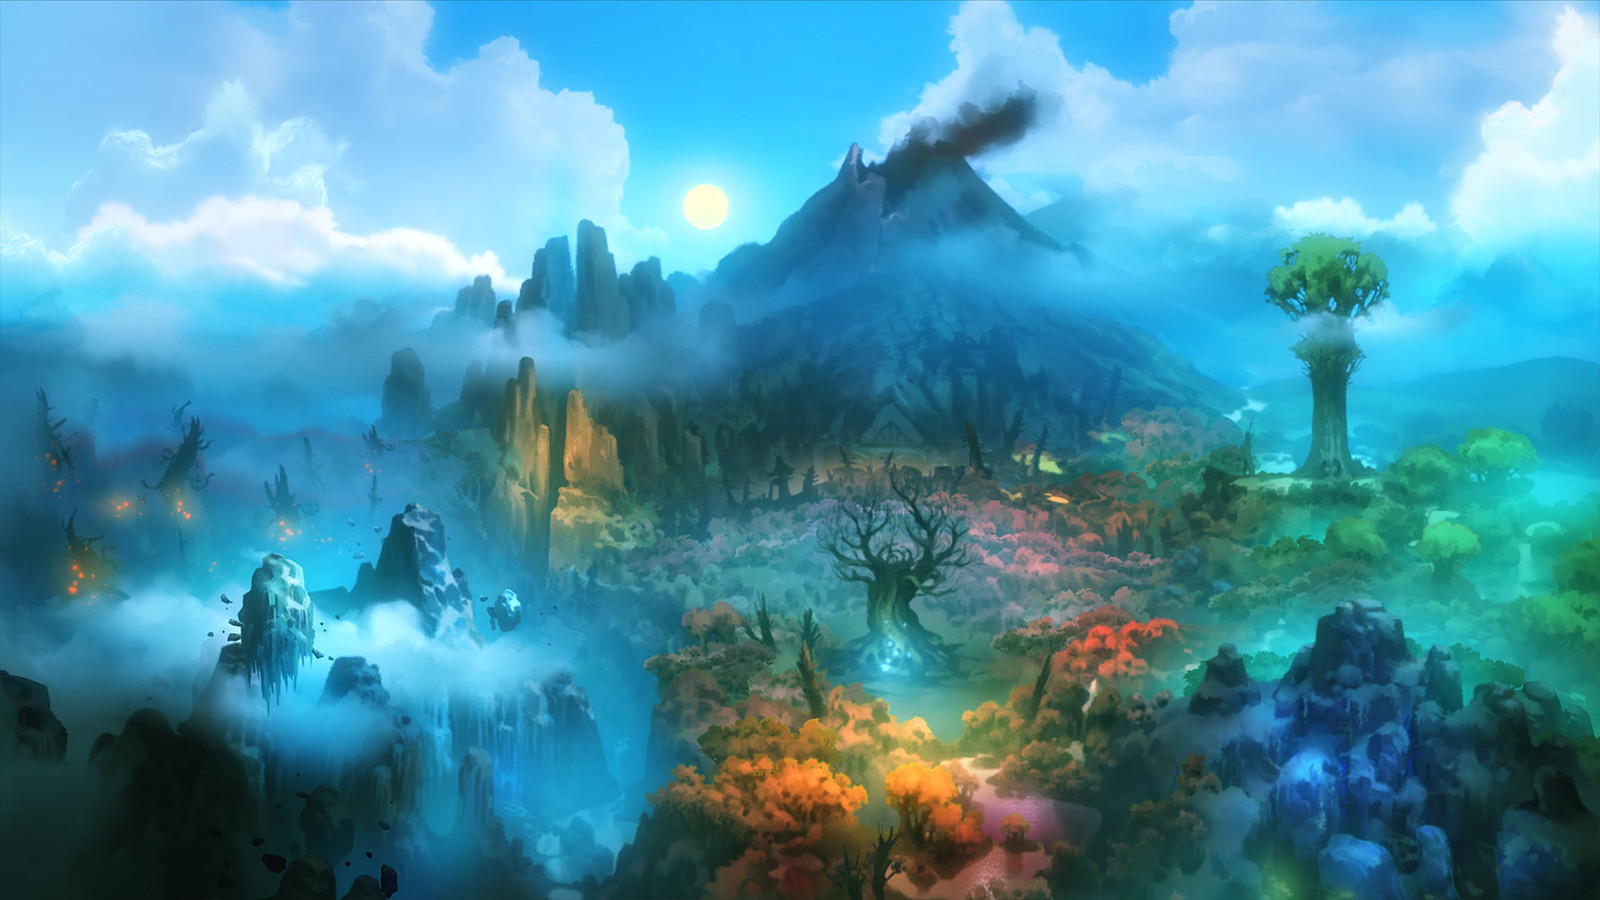 Ori and the Blind Forest Ingame Art